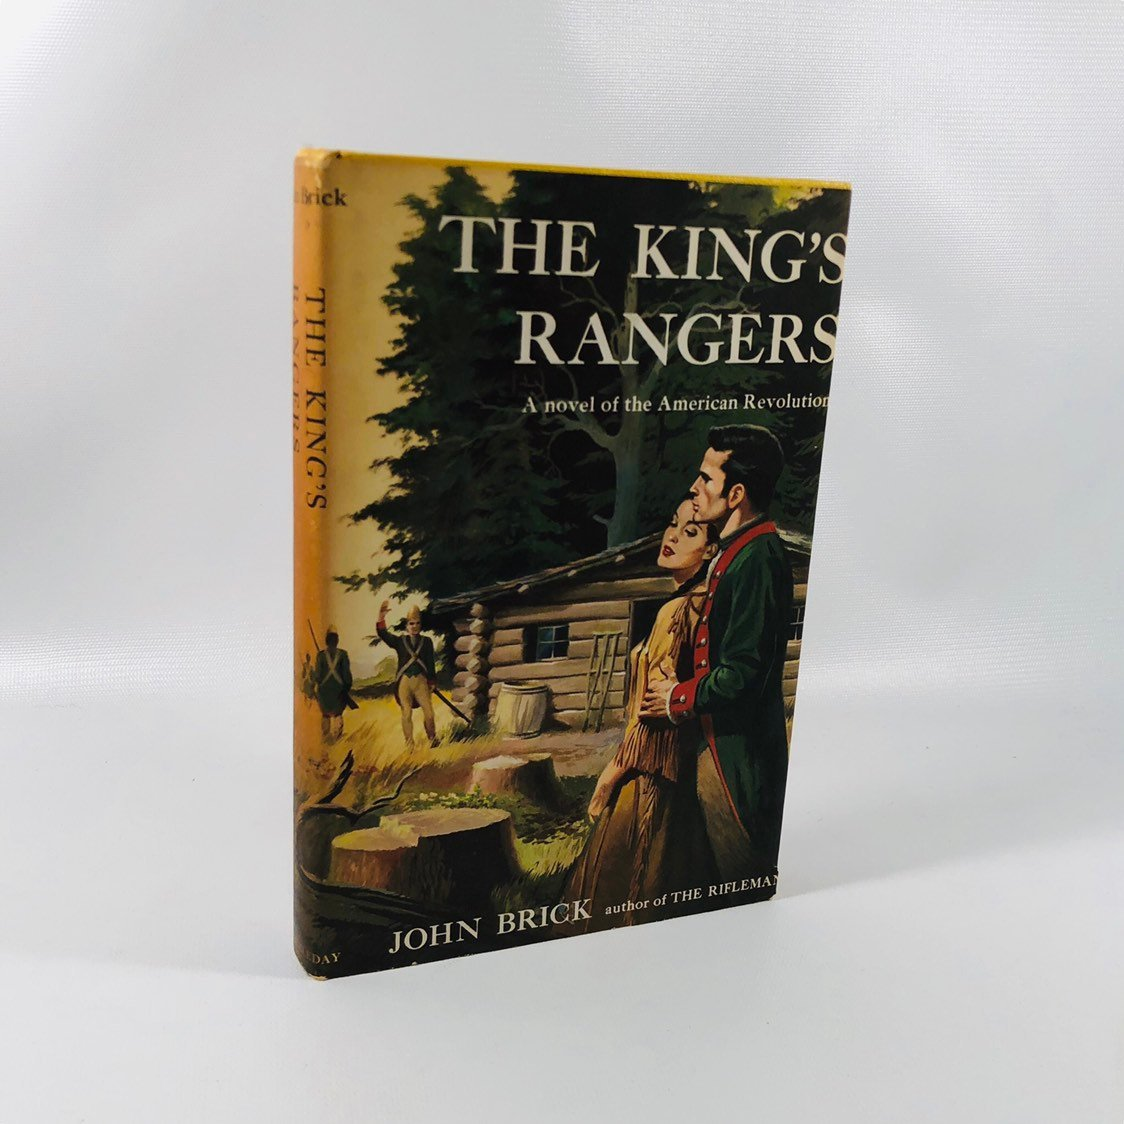 The Kings Rangers by John Brick 1954 A Vintage Novel of the American Revolution